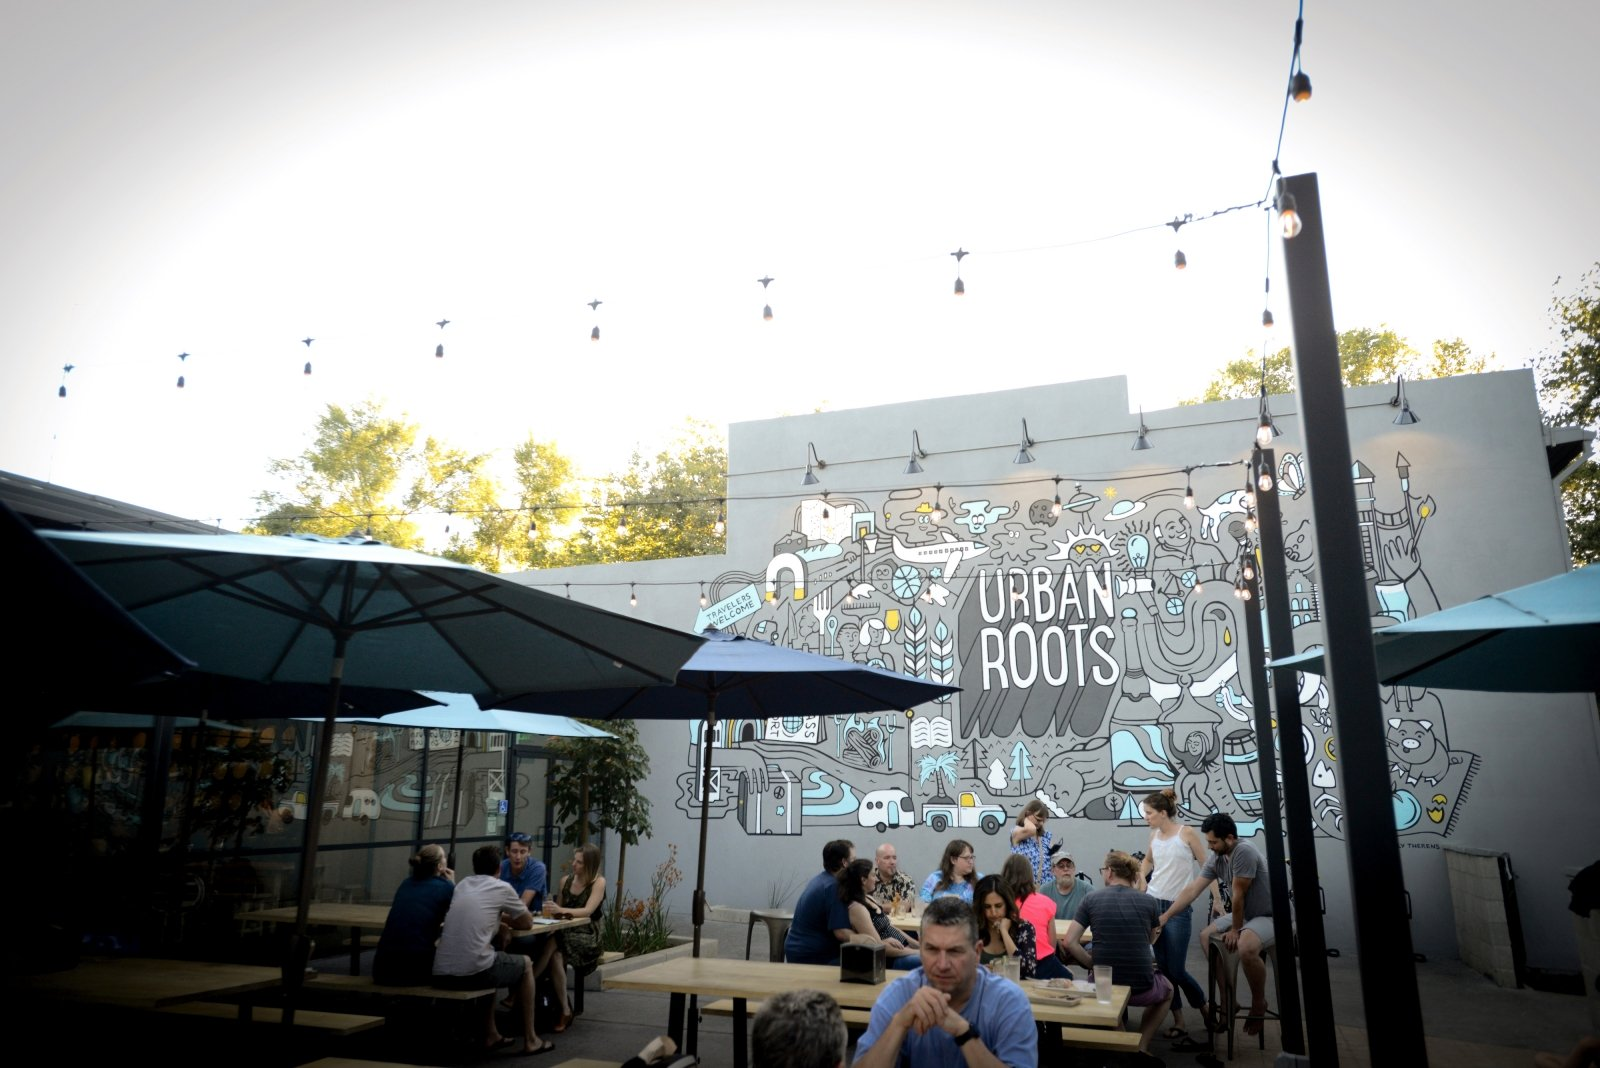 A large mural with illustrations of objects like a passport and airplane to represent travel and sprouting hops that pay tribute to Sacramento's agricultural roots decorates the expansive outdoor patio.